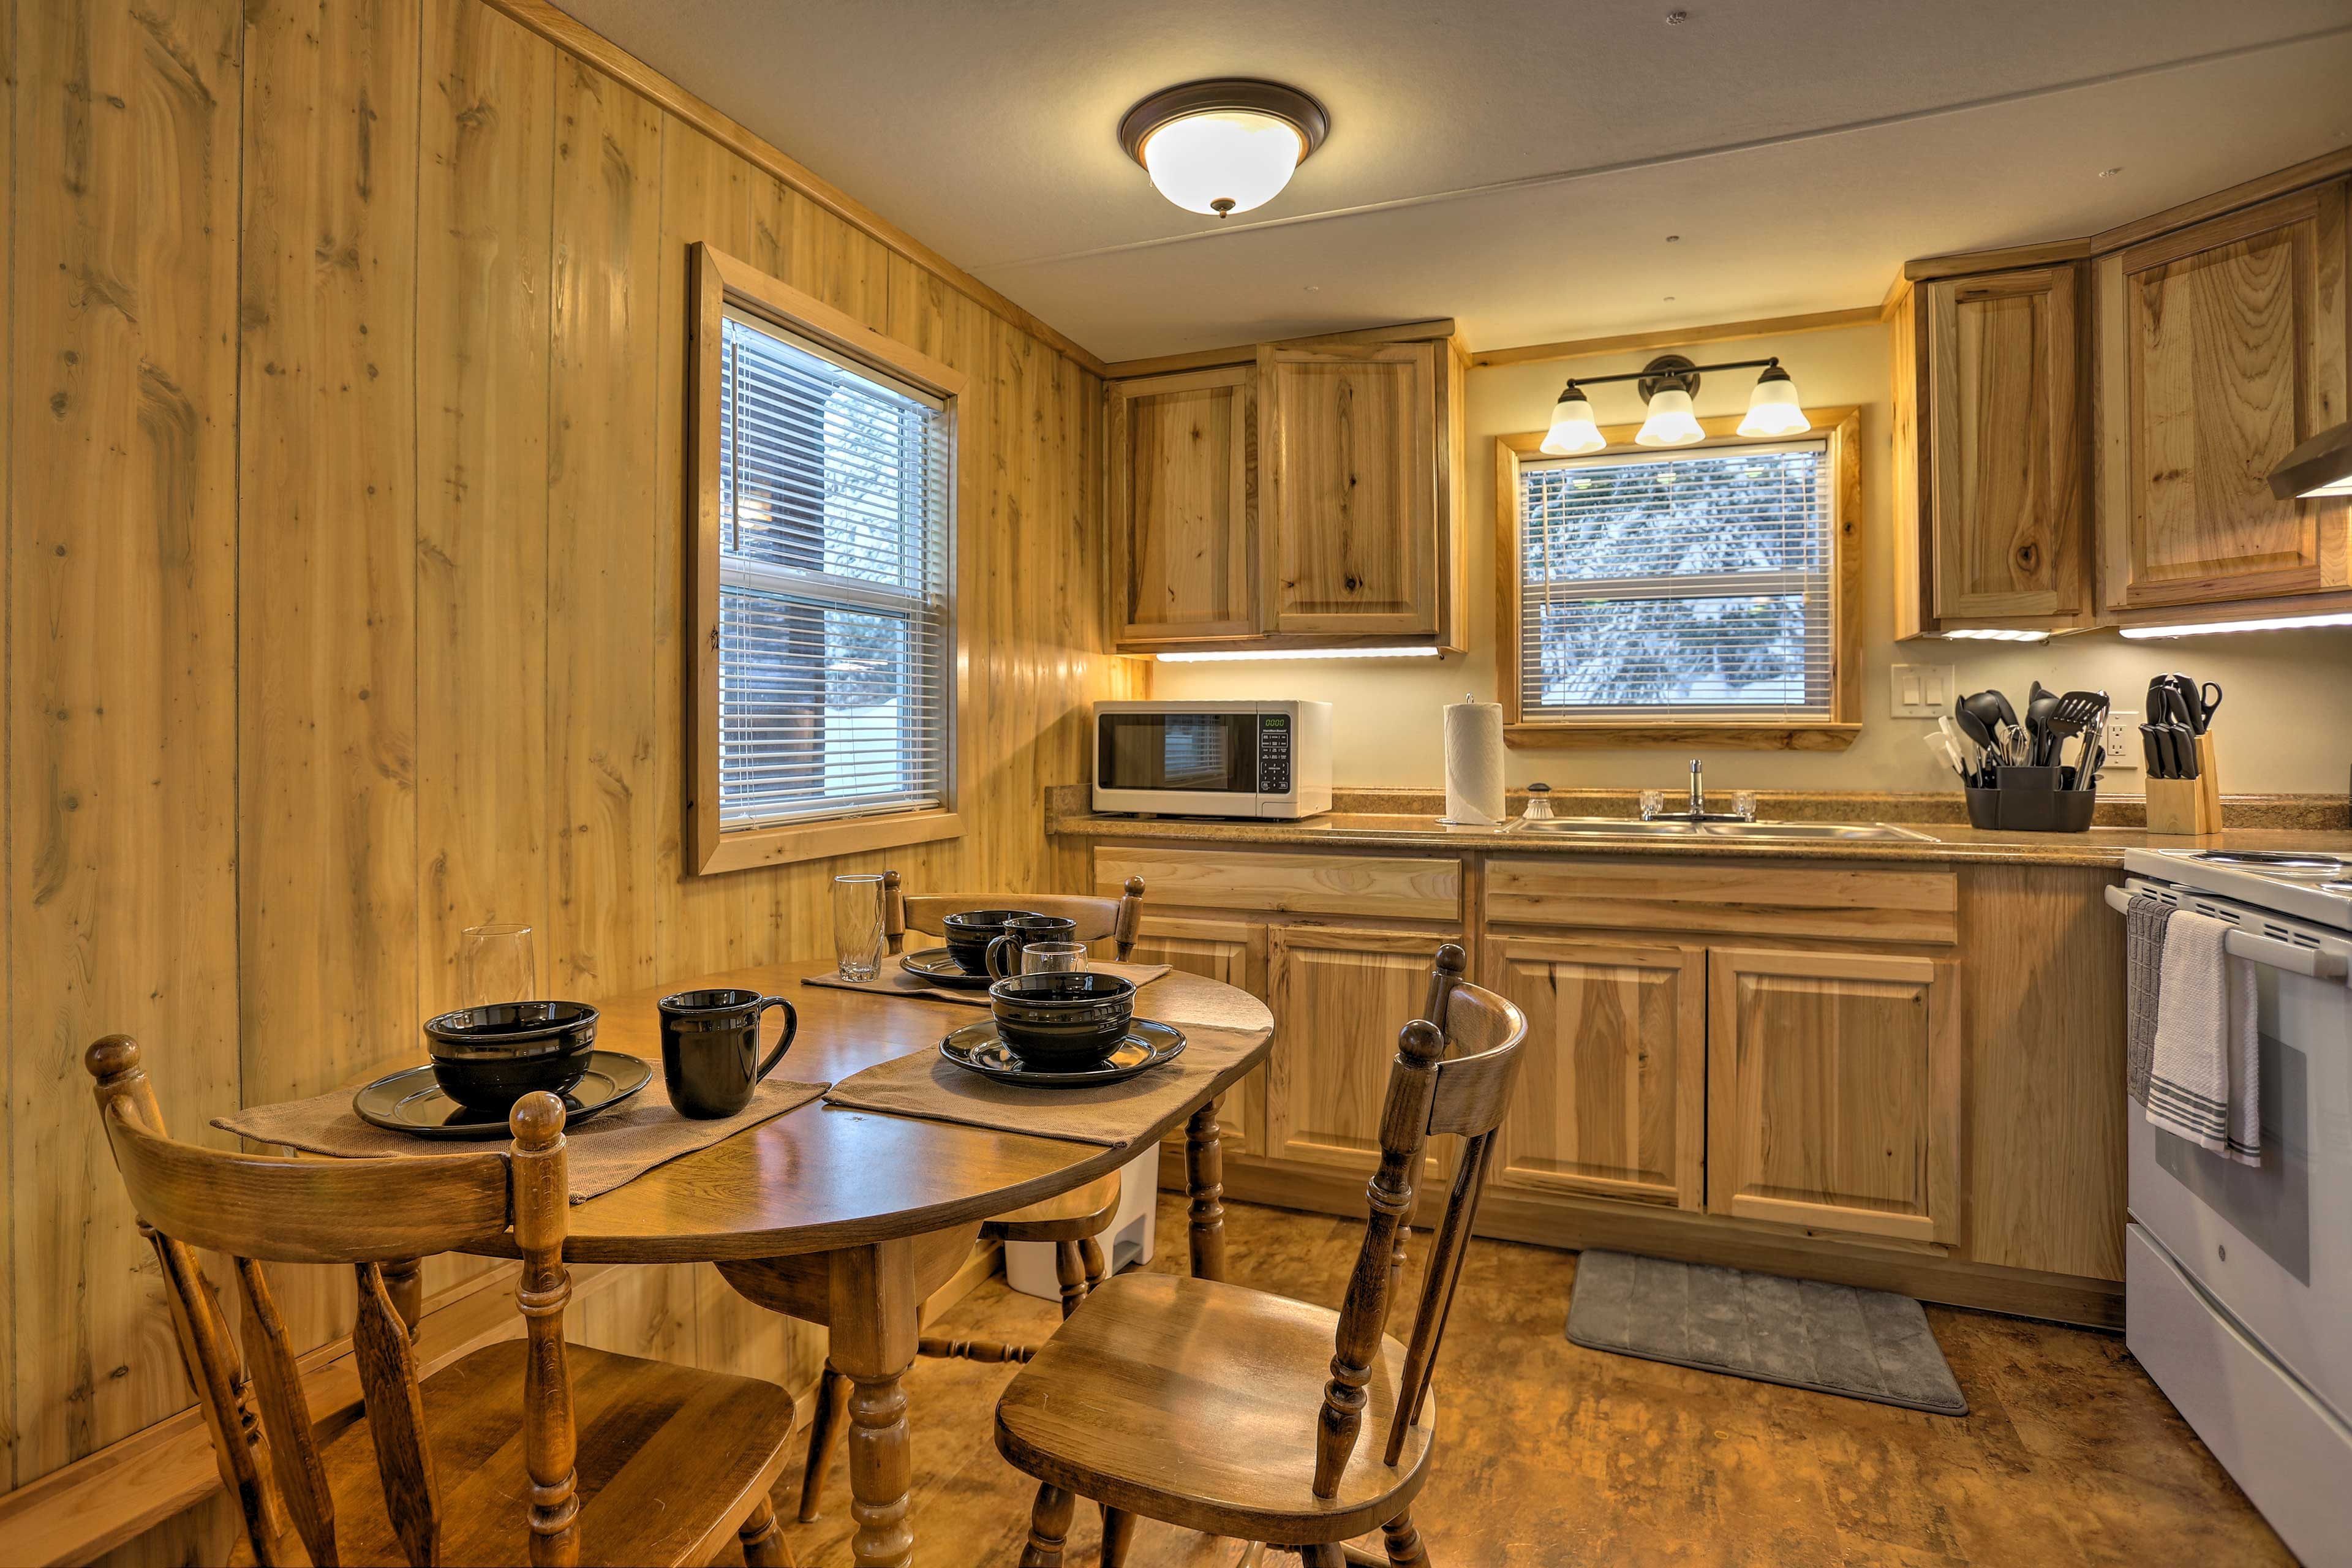 The interior boasts wooden accents that give a quaint rustic feel.